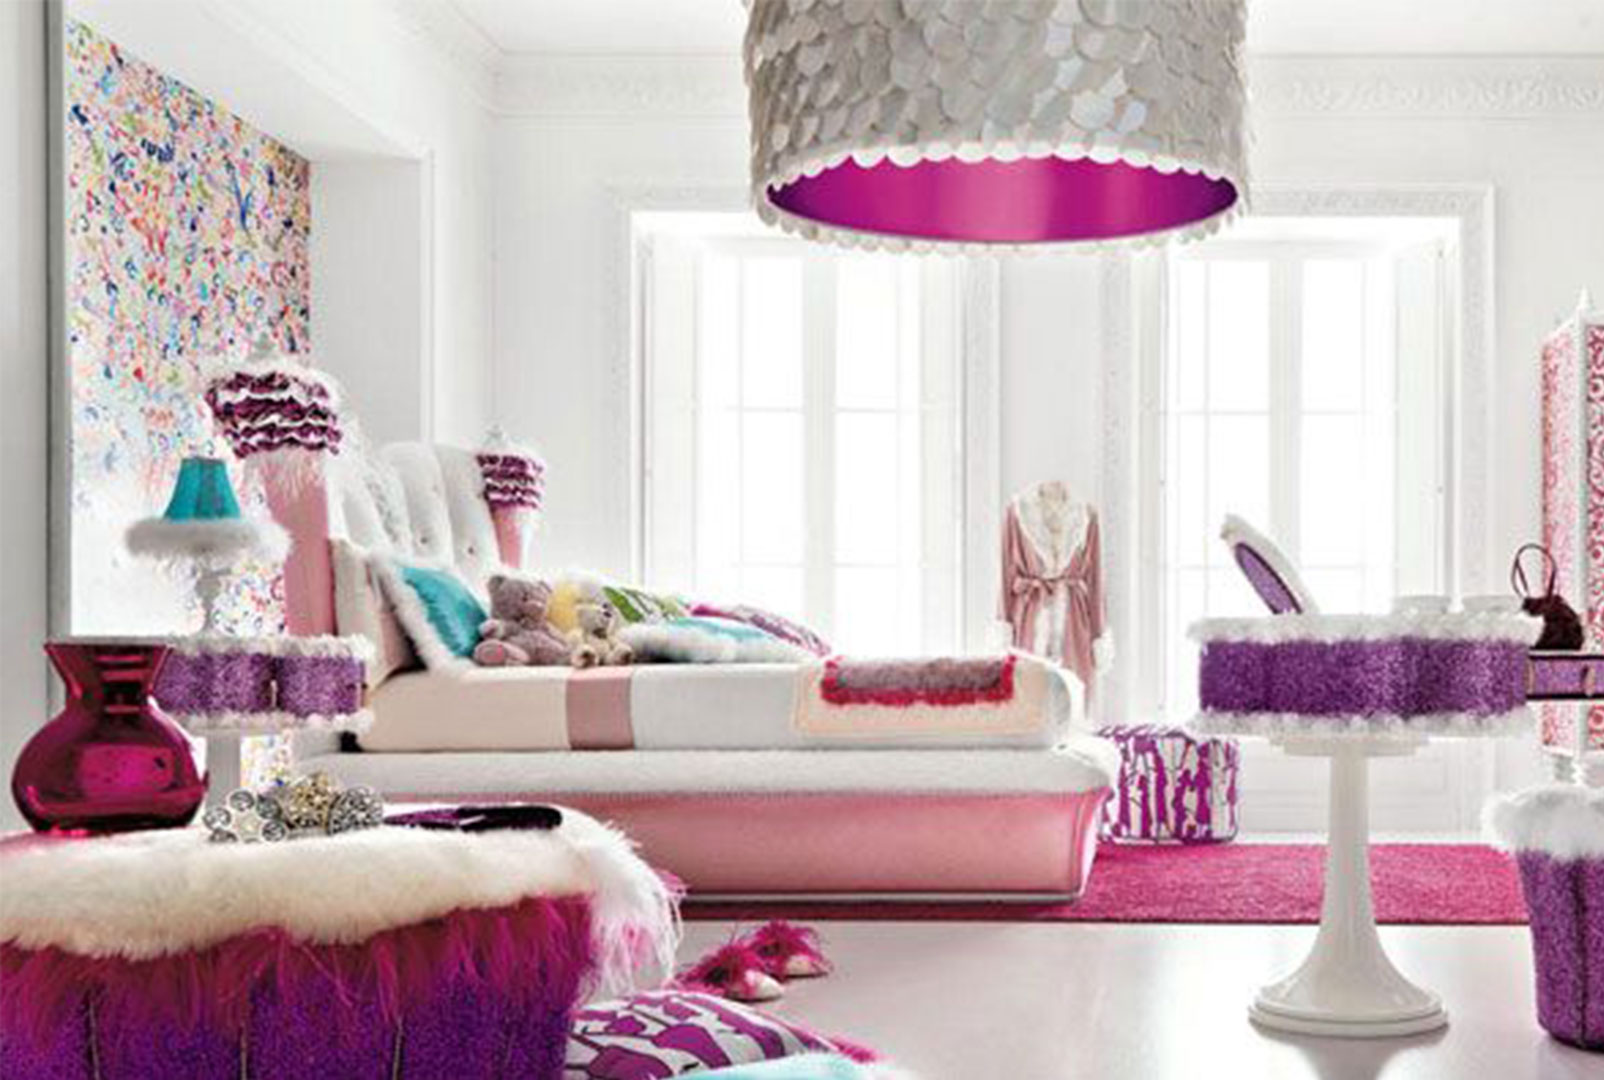 teenage girl bedroom ideas uk Bedroom Ideas For Girls